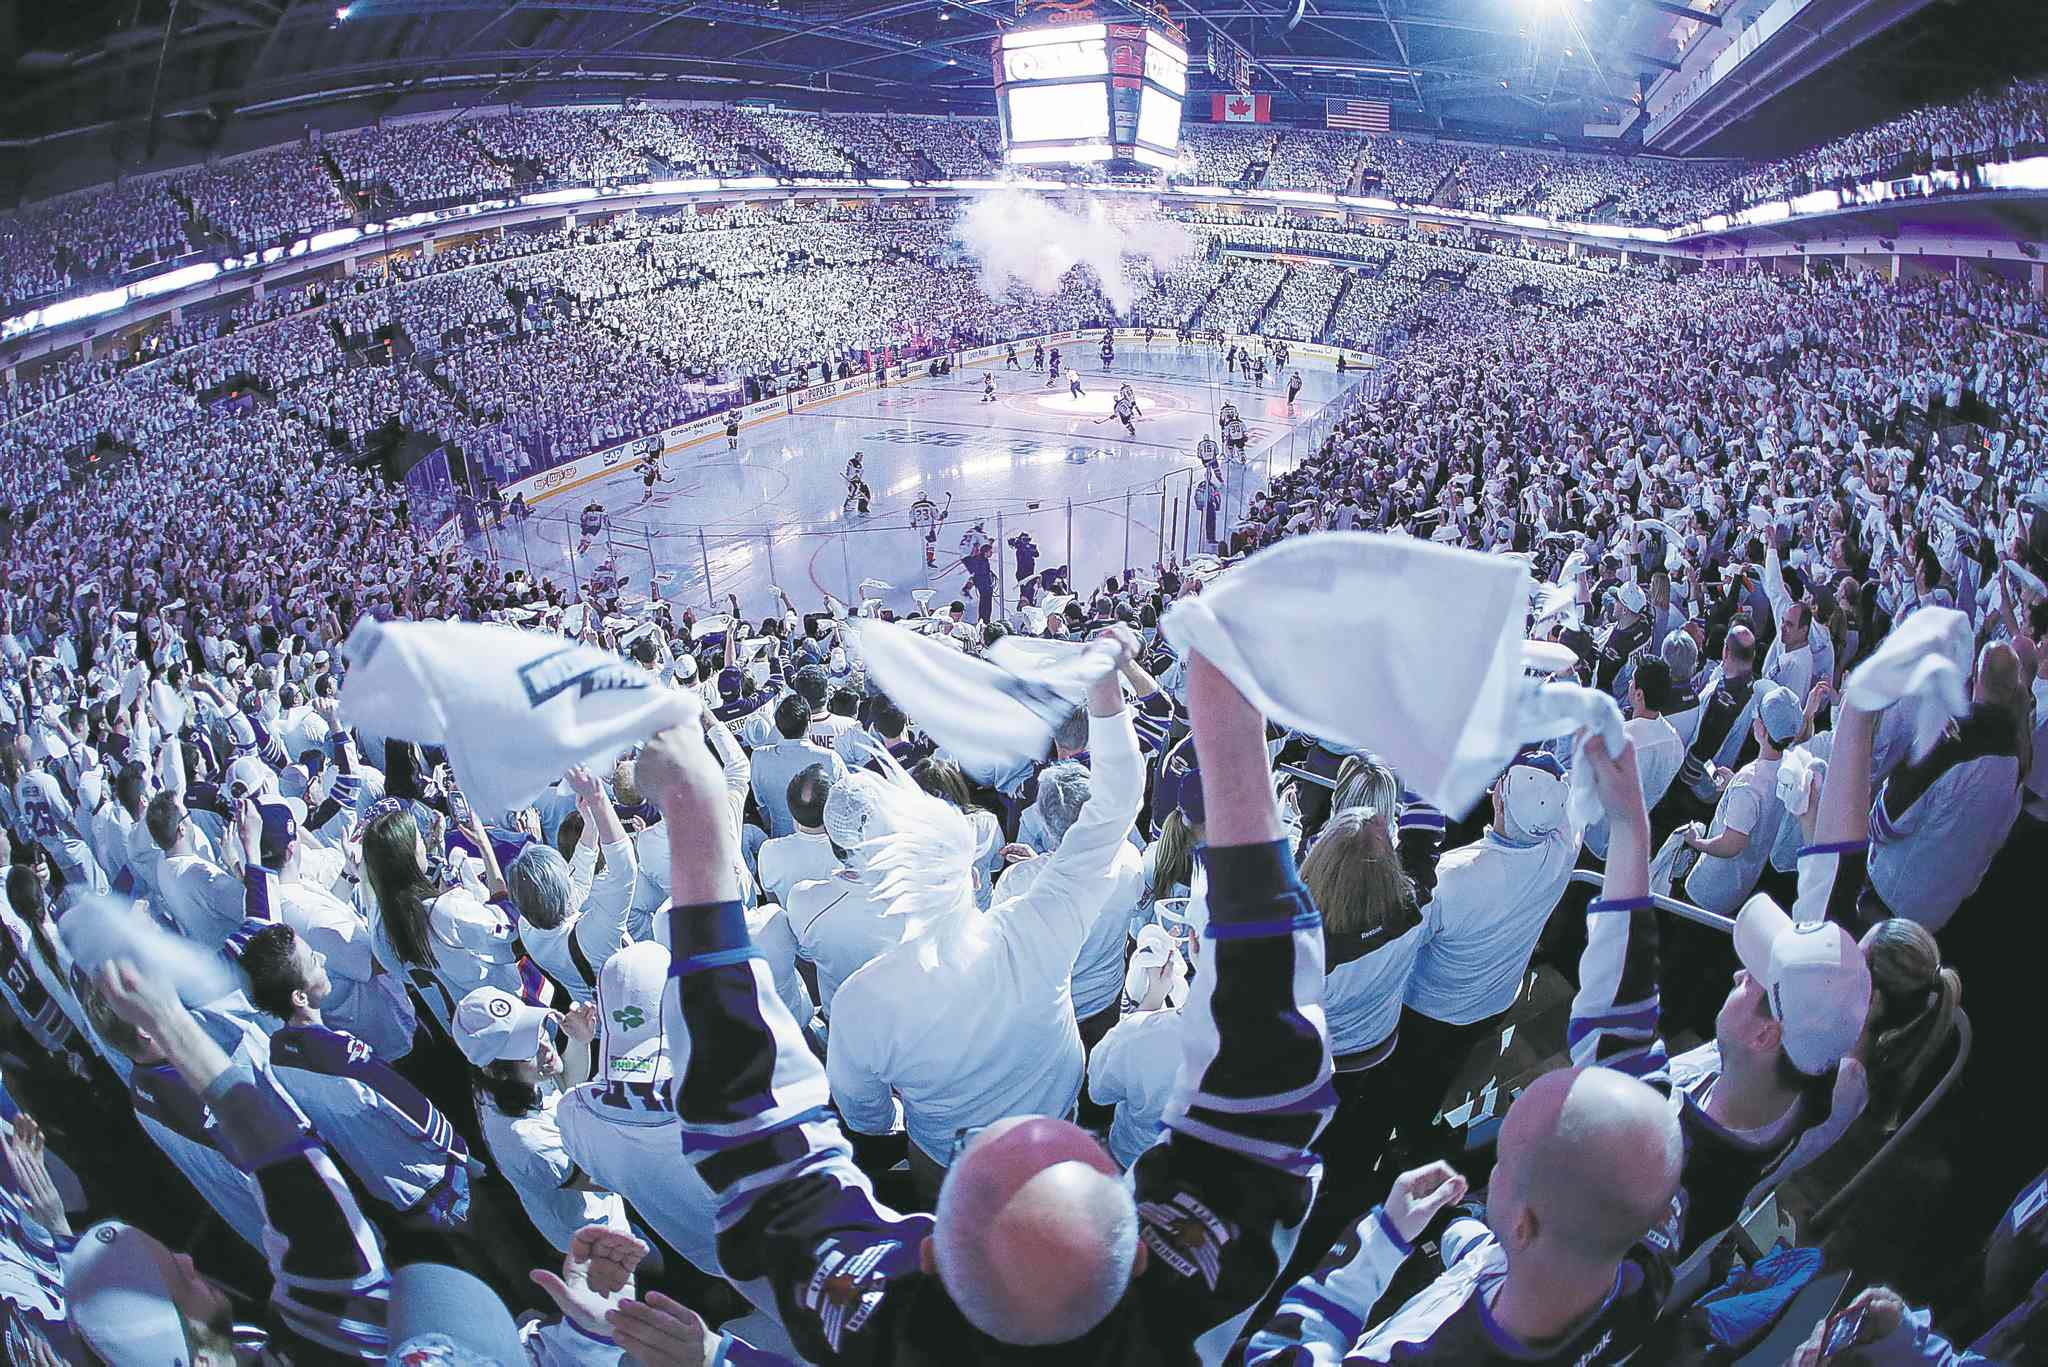 Winnipeg fans celebrate the start of game four of the NHL playoffs between the Winnipeg Jets and the Anaheim Ducks in Winnipeg on Wednesday, April 22, 2015.